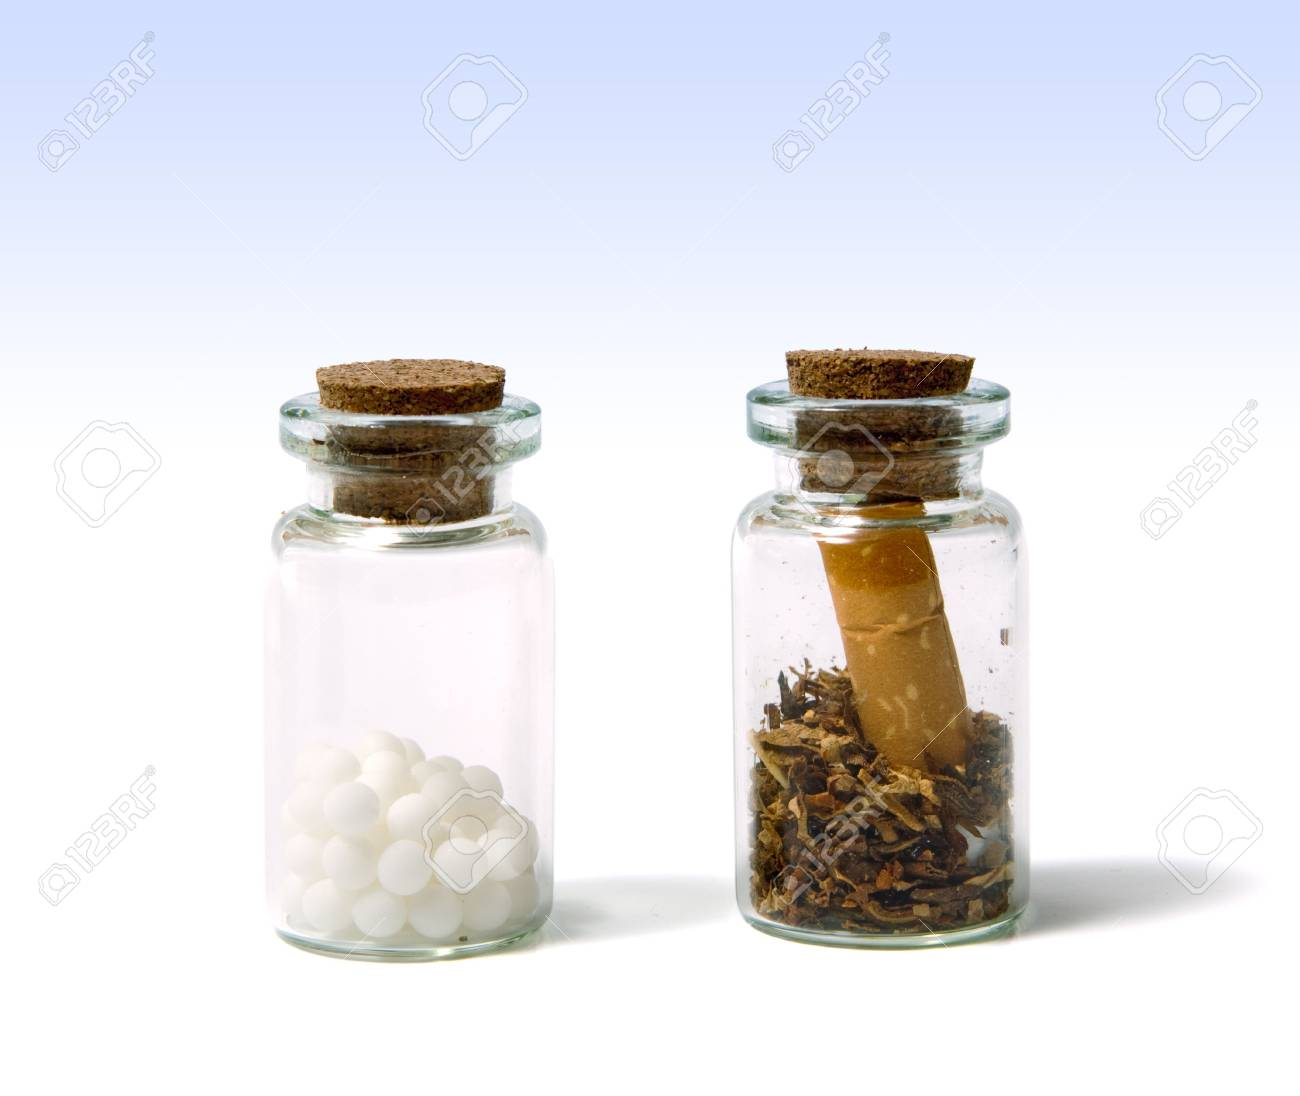 Poisons locked in bottles: cigarette butt and medications Stock Photo - 8358780